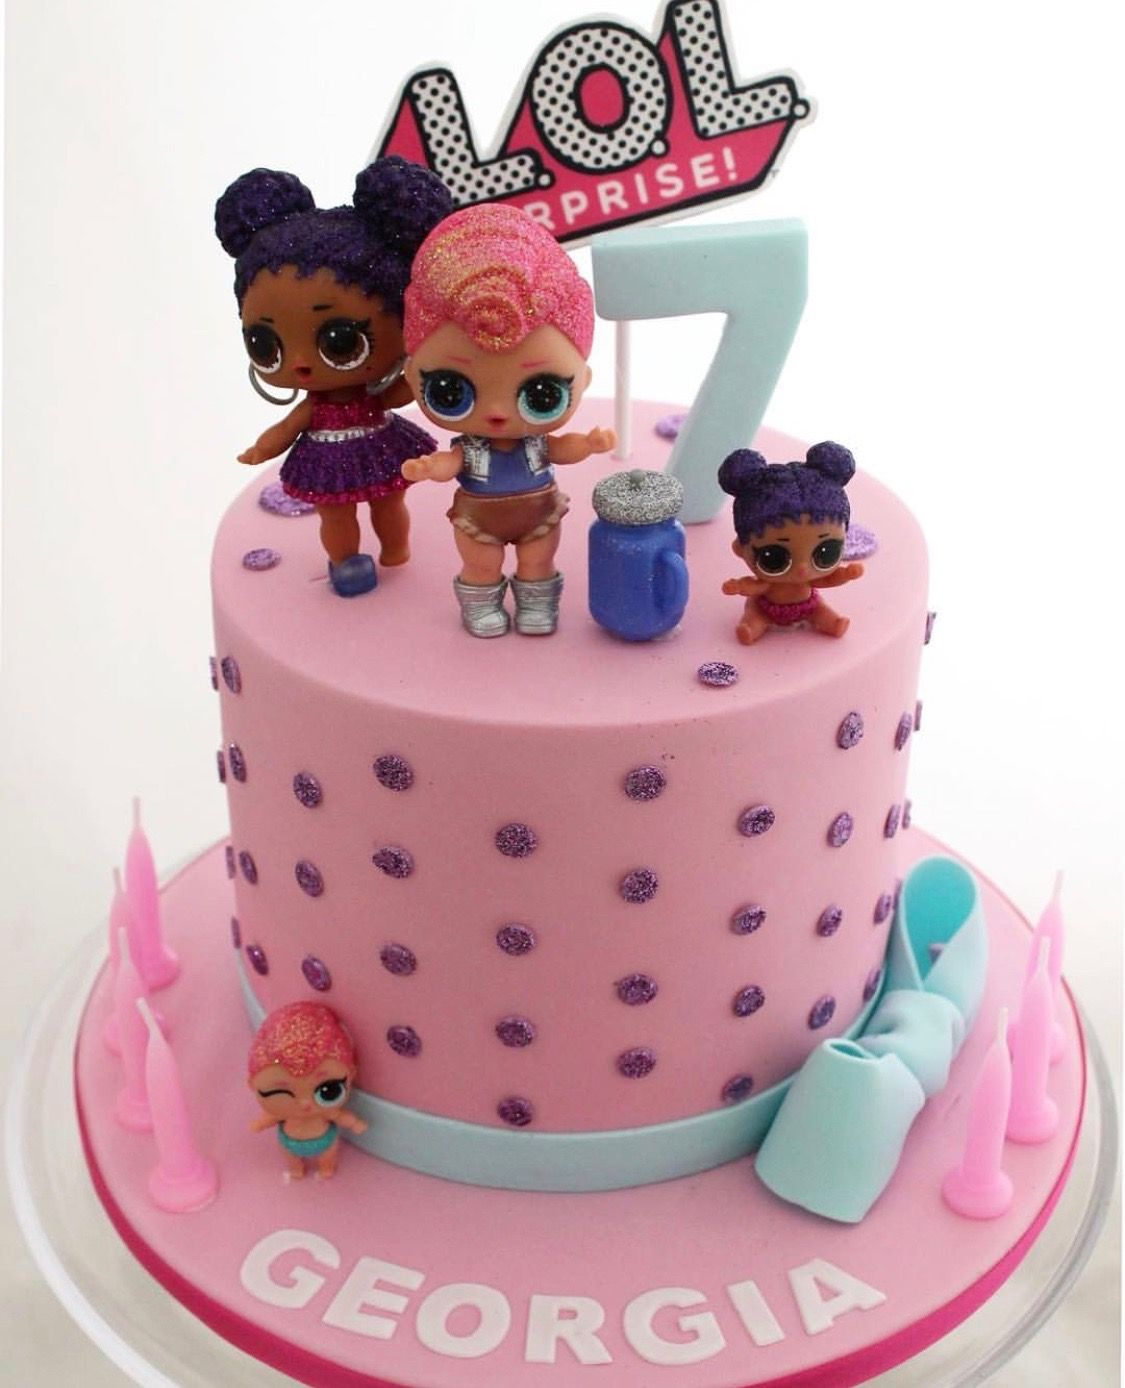 Lol Surprise Birthday Cake Doll Birthday Cake Funny Birthday Cakes Birthday Cake Kids